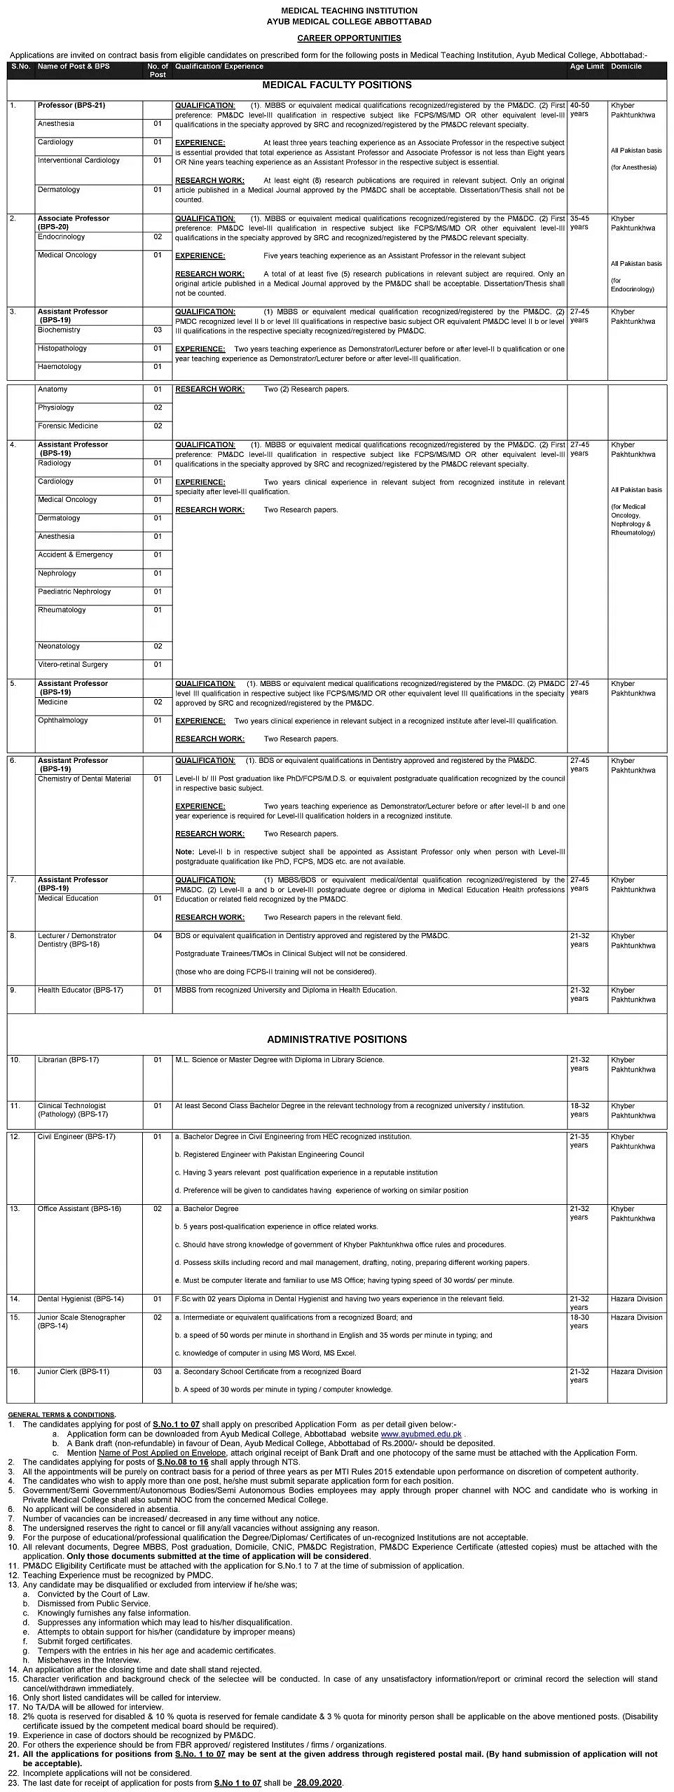 Medical Teaching Institution Ayub Medical College Jobs NTS Result